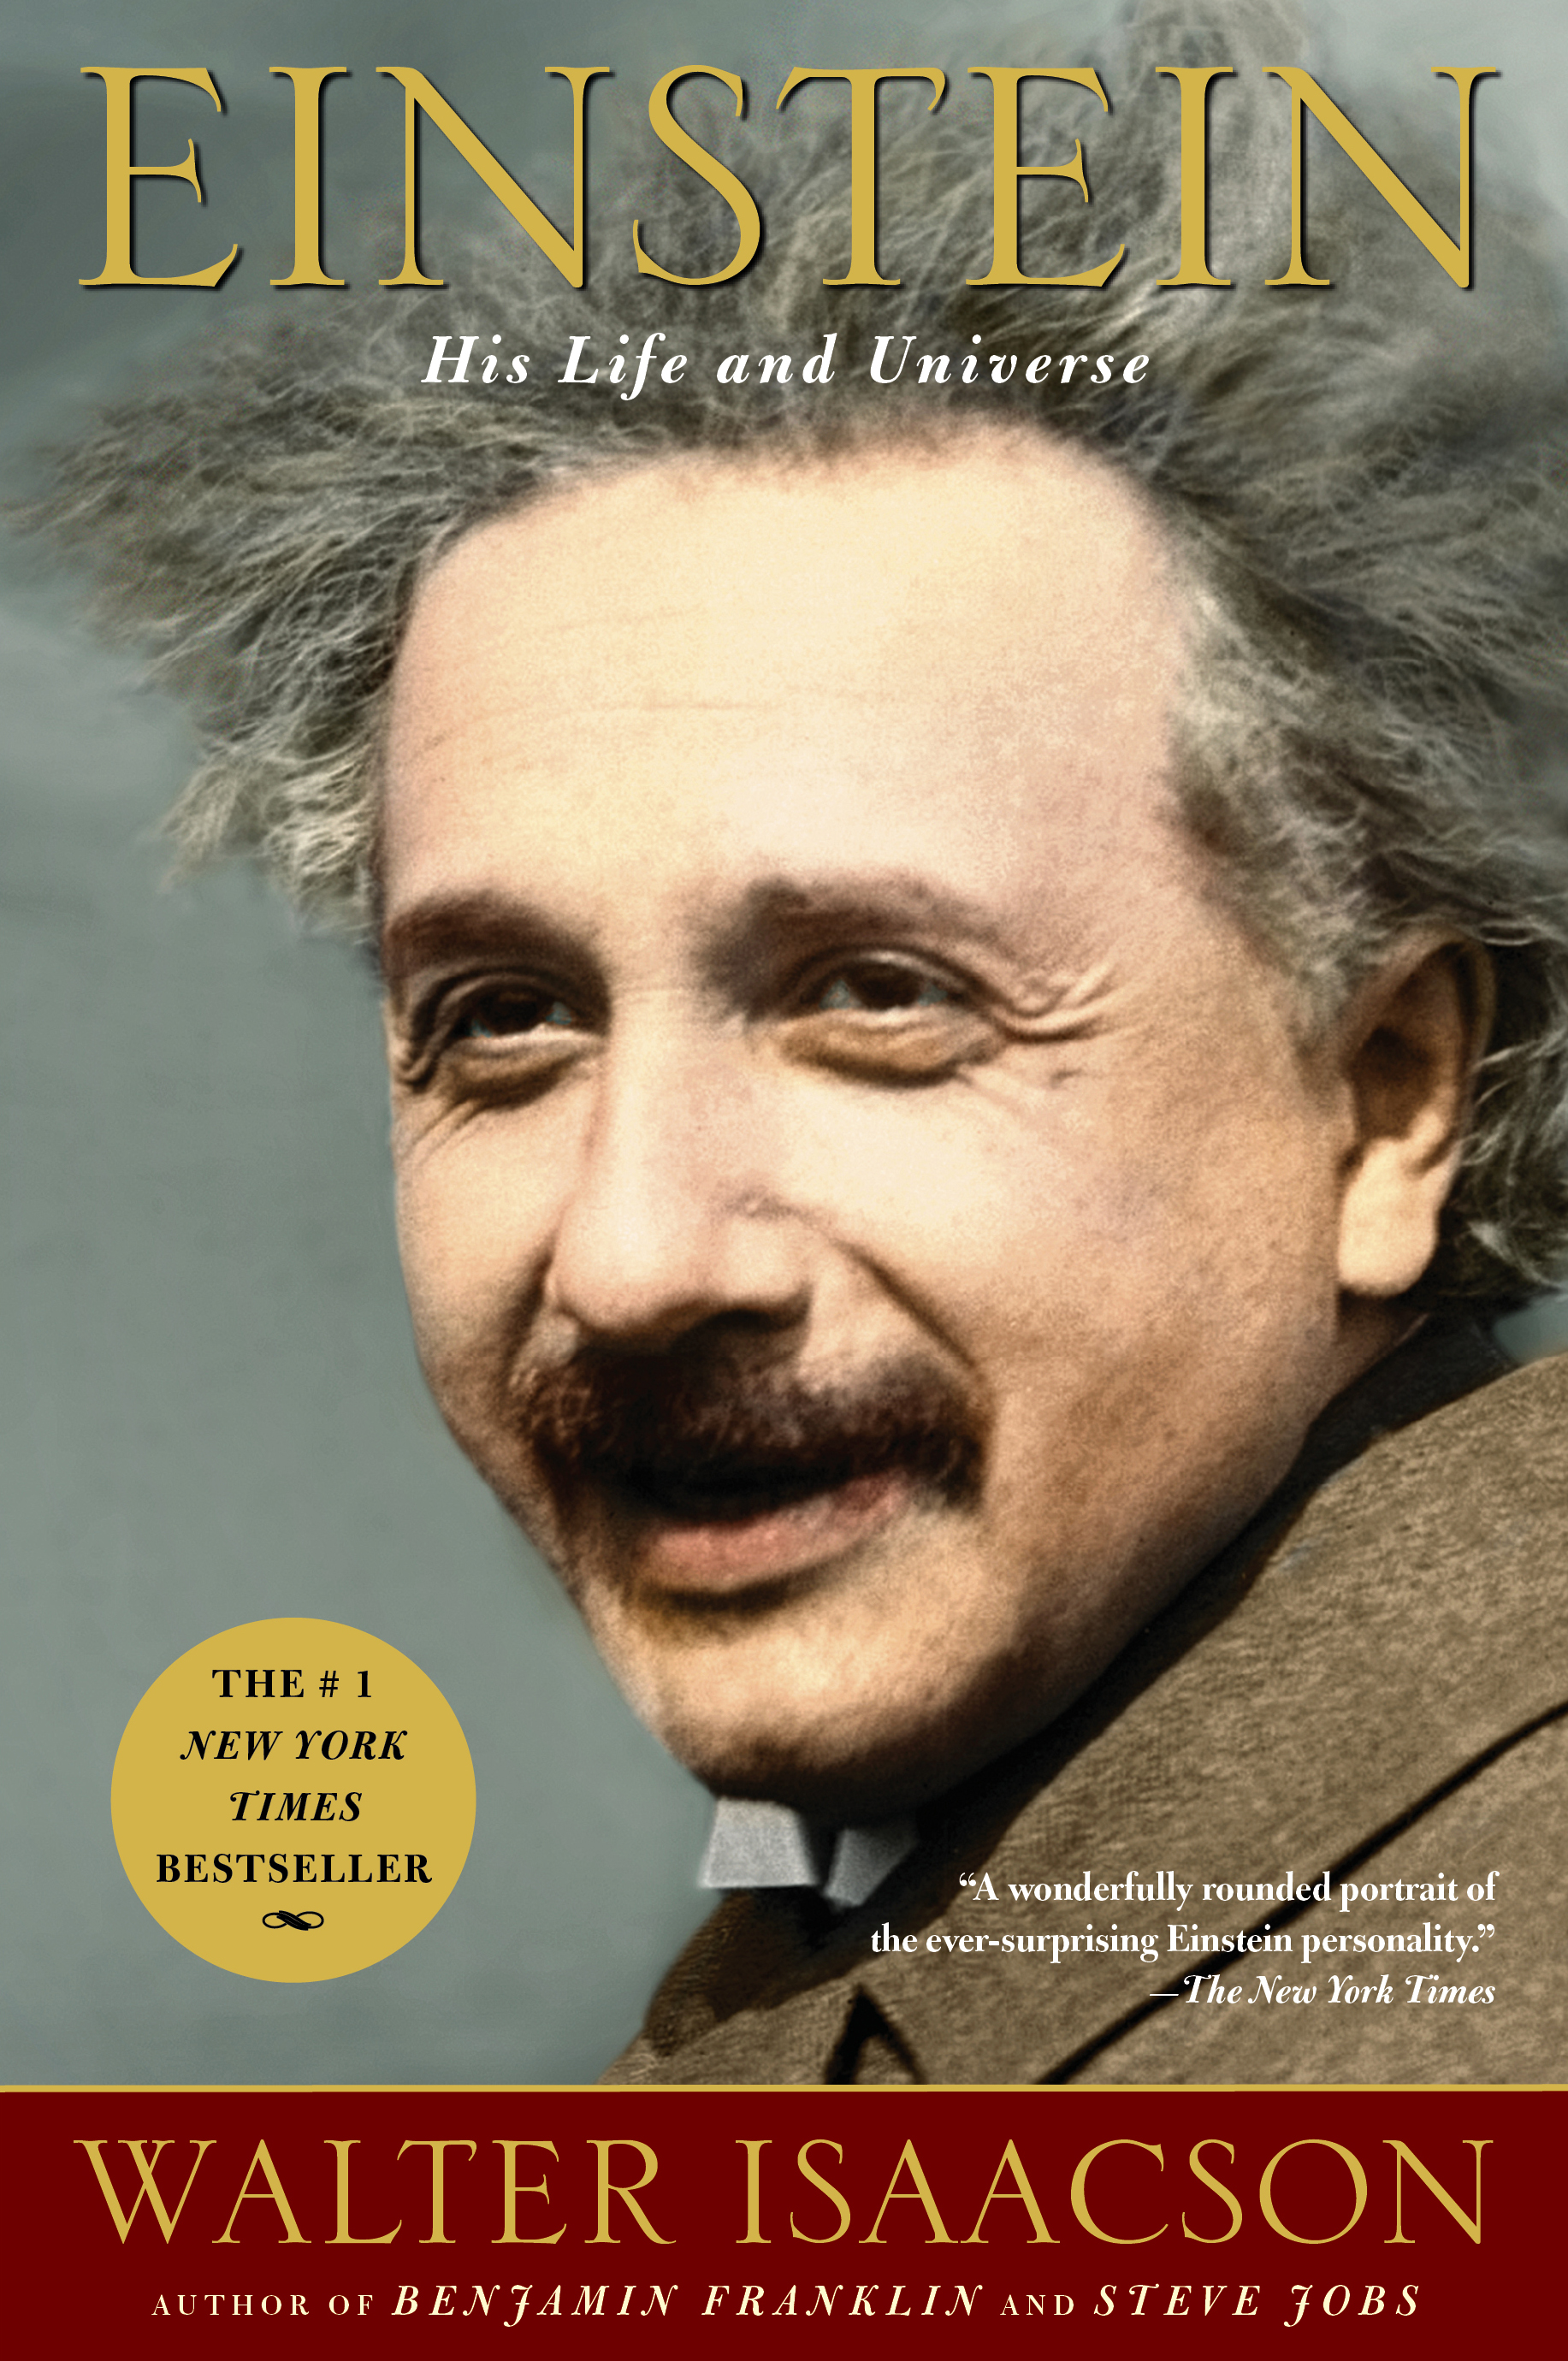 https://d28hgpri8am2if.cloudfront.net/book_images/onix/cvr9780743264747/einstein-9780743264747_hr.jpg